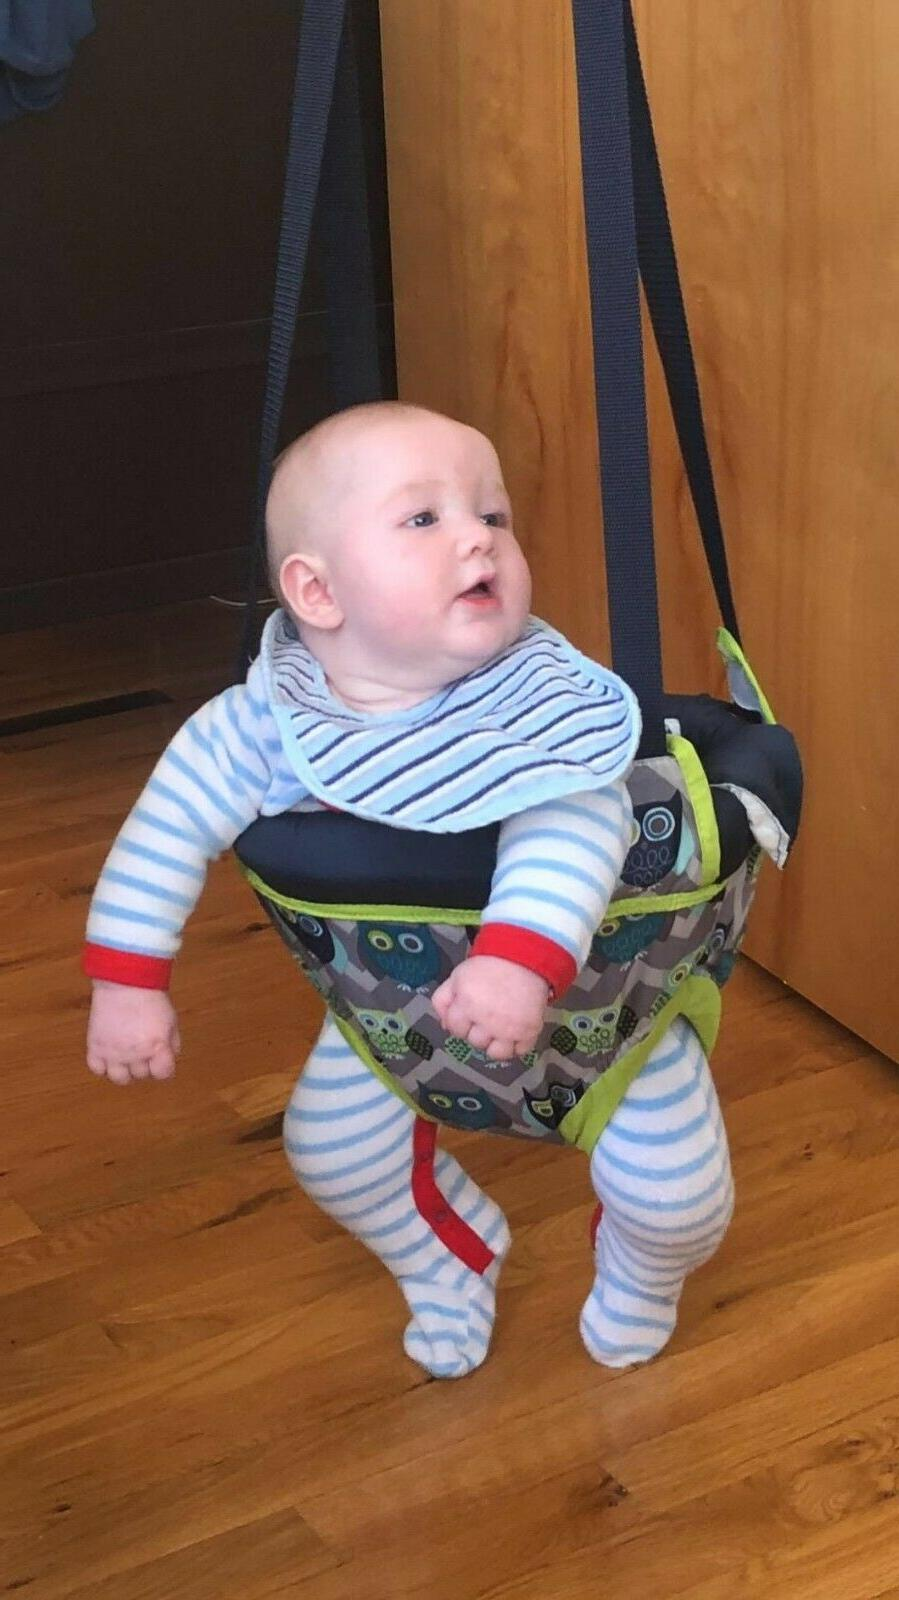 Baby Bouncer Swing Toddler Infant Exercise Seat